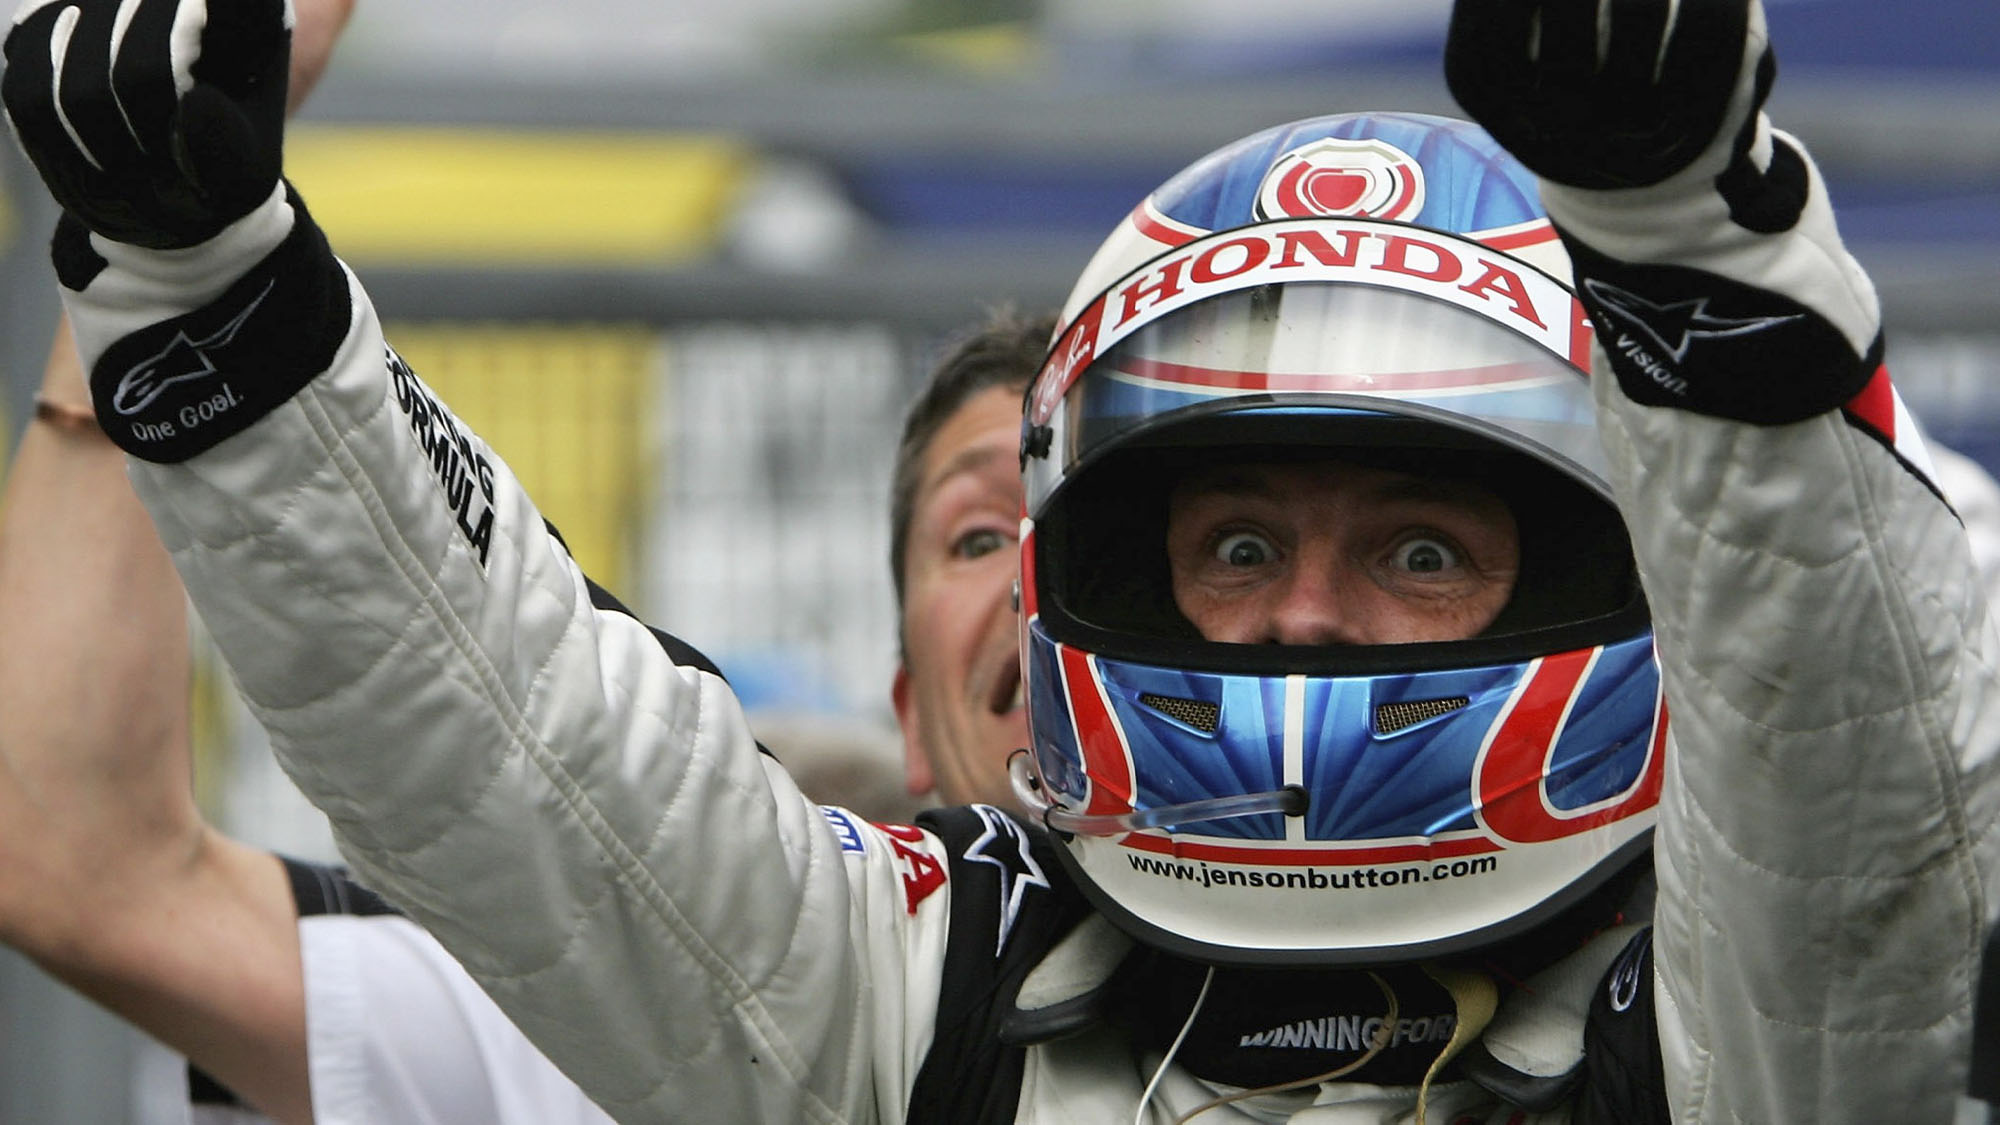 BUDAPEST, HUNGARY - AUGUST 06: Jenson Button of Great Britain and Honda Racing celebrates his first ever Formula One victory after winning the Hungarian Formula One Grand Prix at the Hungaroring on August 6, 2006 in Budapest, Hunagary. (Photo by Paul Gilham/Getty Images)